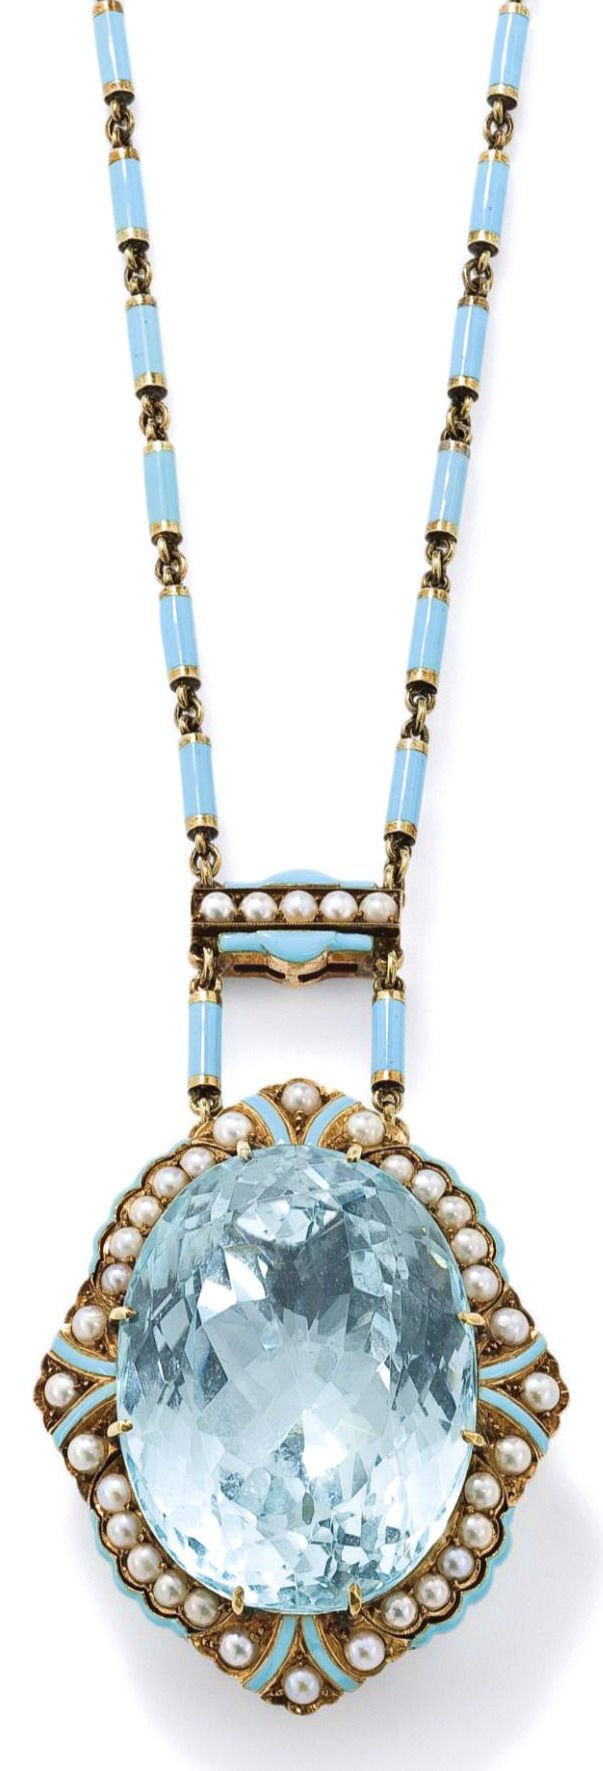 An aquamarine and pearl necklace The oval mixed-cut aquamarine, weighing approximately 65.00 to 70.00 carats, claw-set within a scalloped half-pearl and light blue enamel frame to a similarly set surmount and suspended from a similar blue enamel baton-link chain